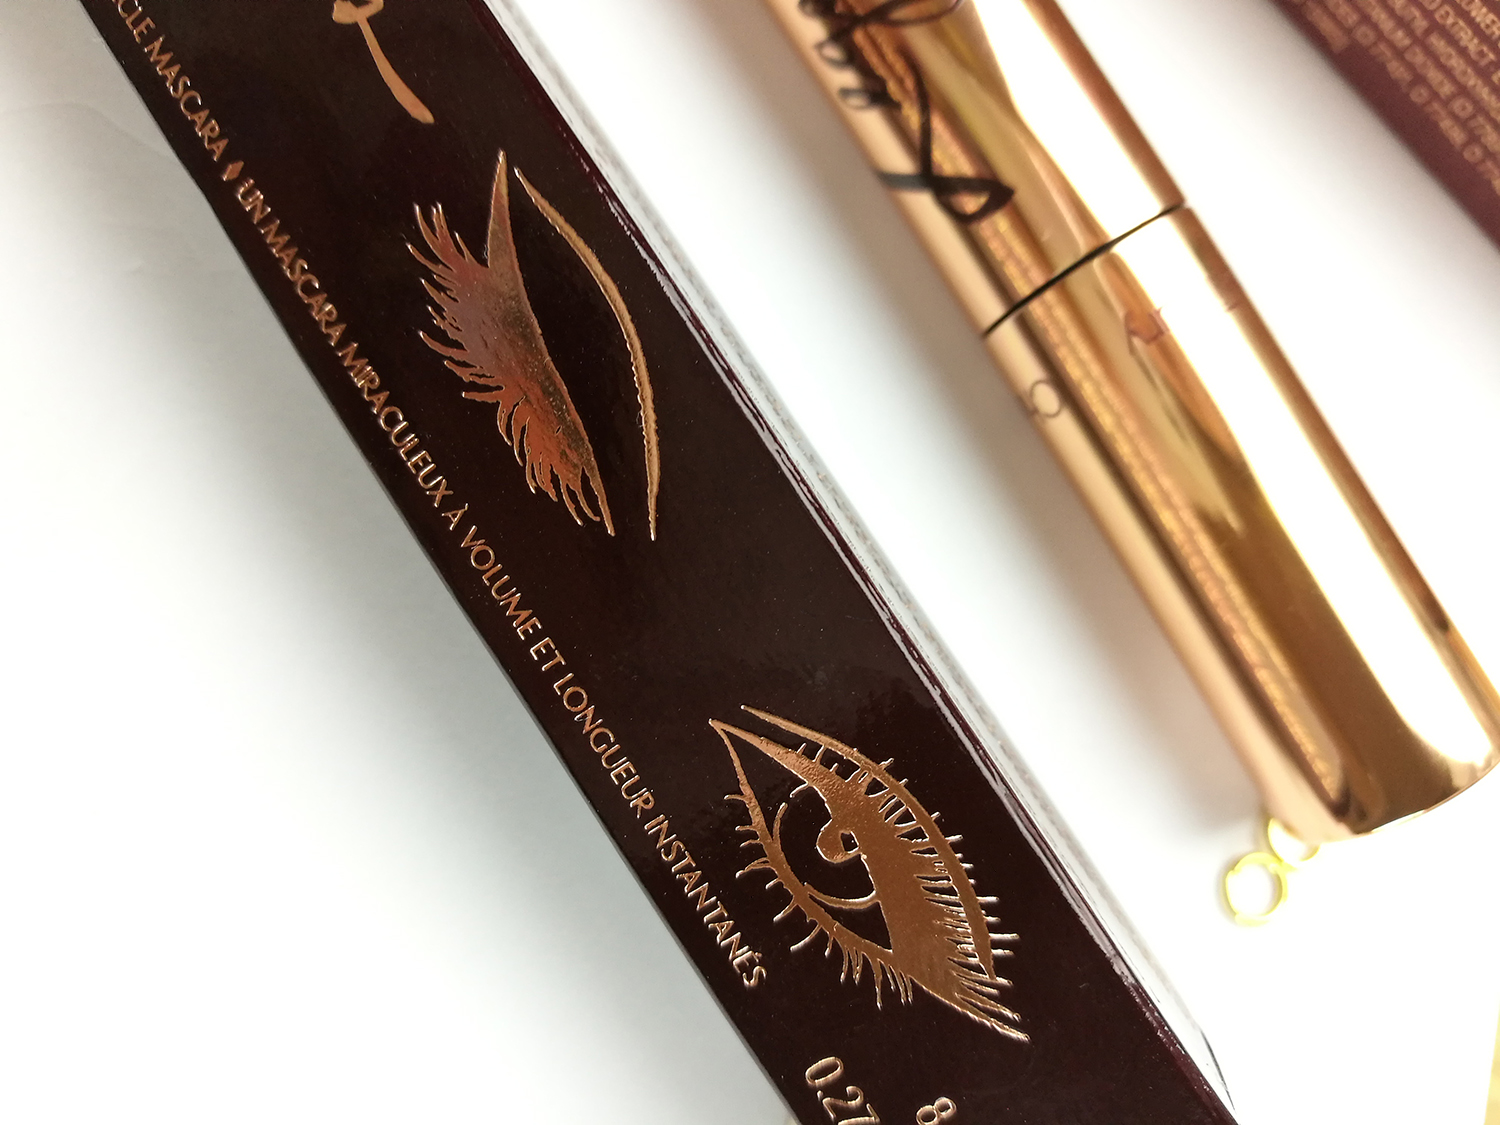 Charlotte Tilbury Legendary Mascara review